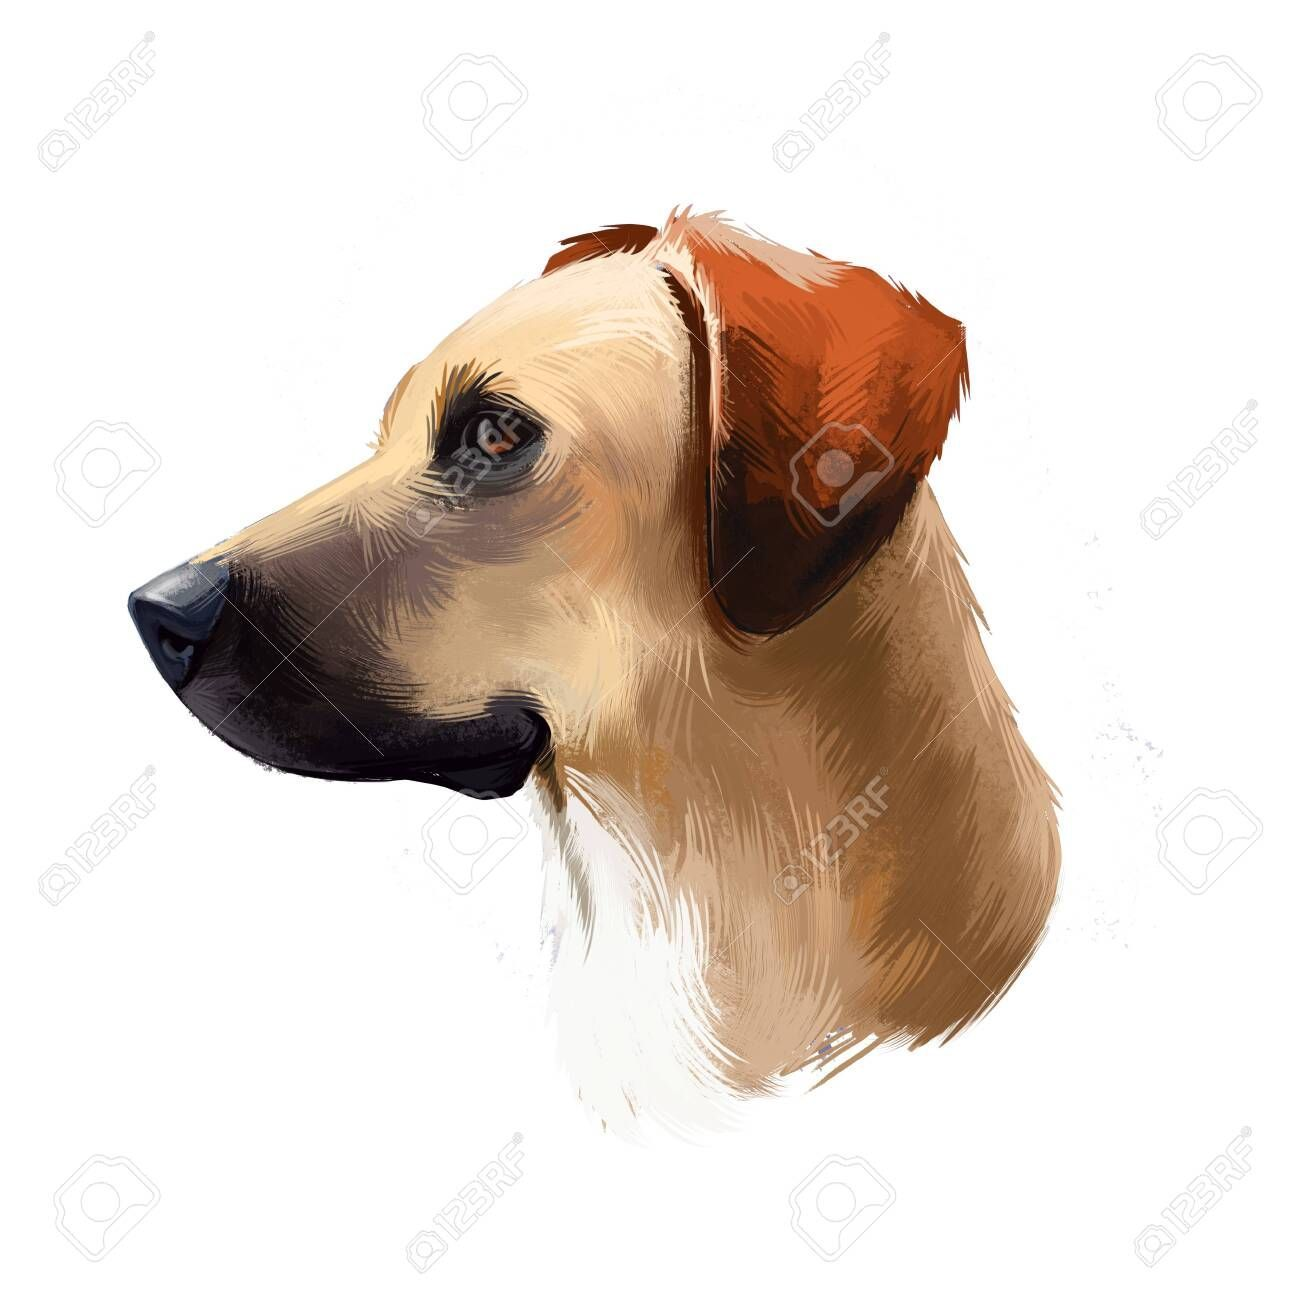 Southern Cur, Black Mouth Cur, Yellow Black Mouth dog digital art illustration isolated on white background. American origin scenthound dog. Cute pet hand drawn portrait. Graphic clip art design , #SPONSORED, #art, #digital, #illustration, #white, #isolated #blackmouthcurdog Southern Cur, Black Mouth Cur, Yellow Black Mouth dog digital art illustration isolated on white background. American origin scenthound dog. Cute pet hand drawn portrait. Graphic clip art design , #SPONSORED, #art, #digital, #blackmouthcurdog